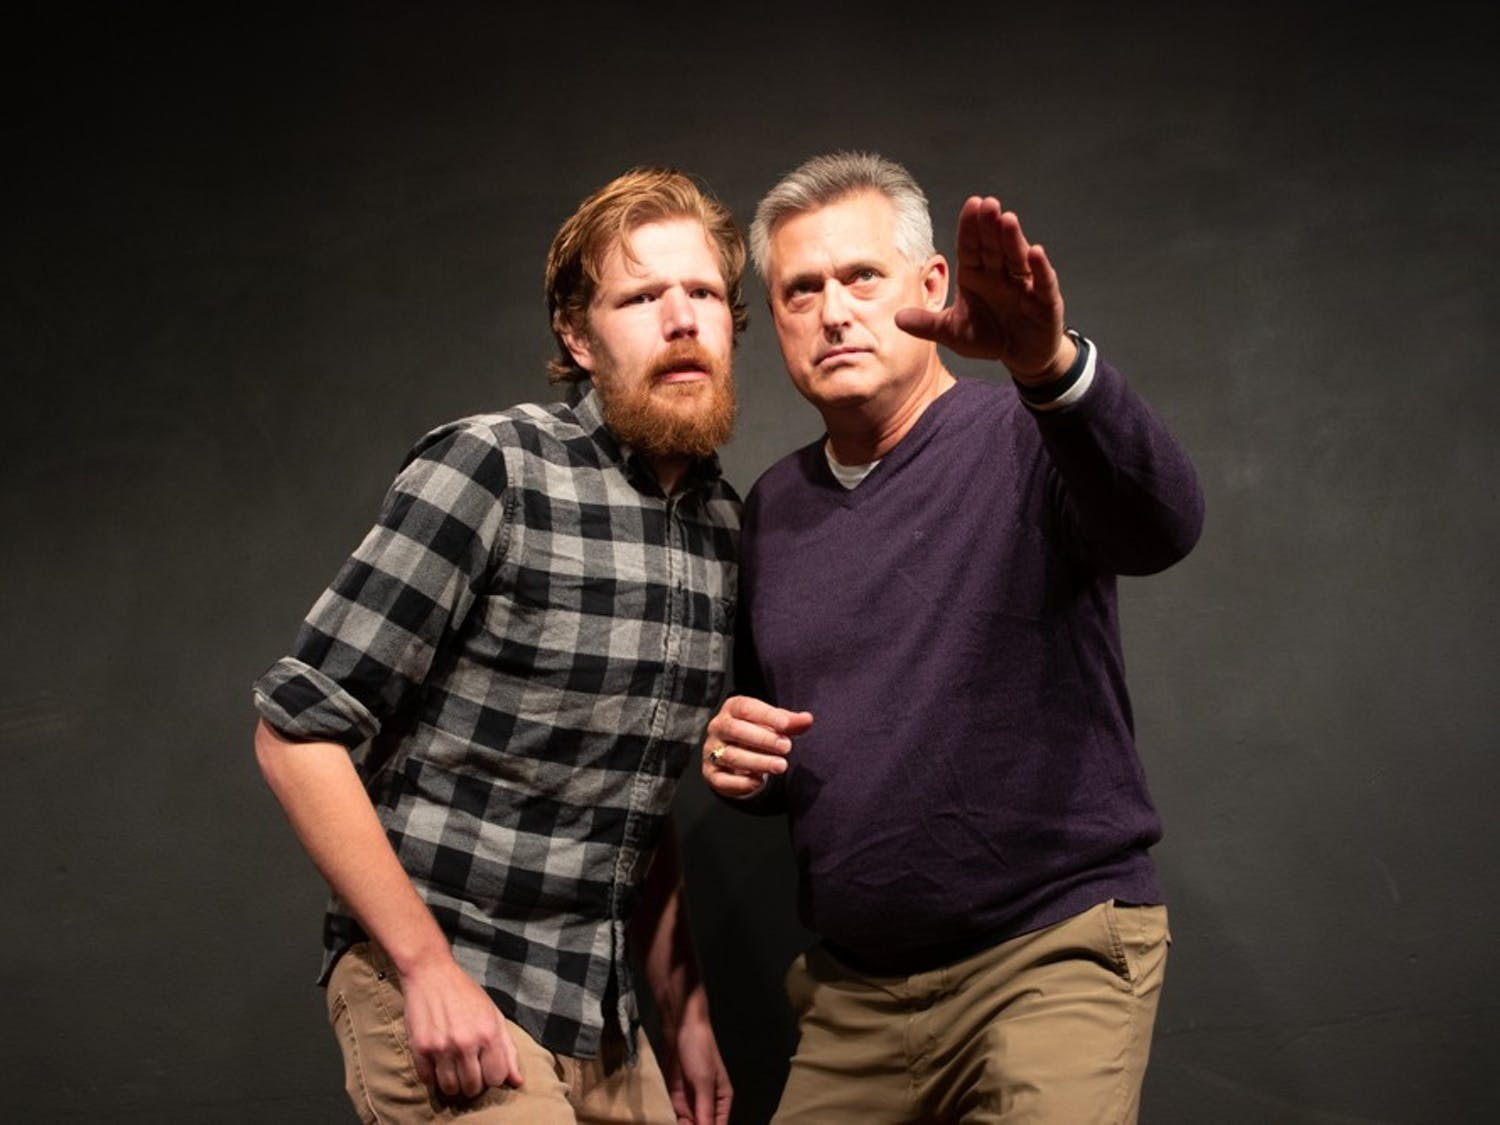 James Mcmahon and Brad Taylor of the improv team, Brad's Basement, perform sketch comedy during Trifecta Improv at The PIT Chapel Hill comedy club on Saturday, Nov. 30, 2019.